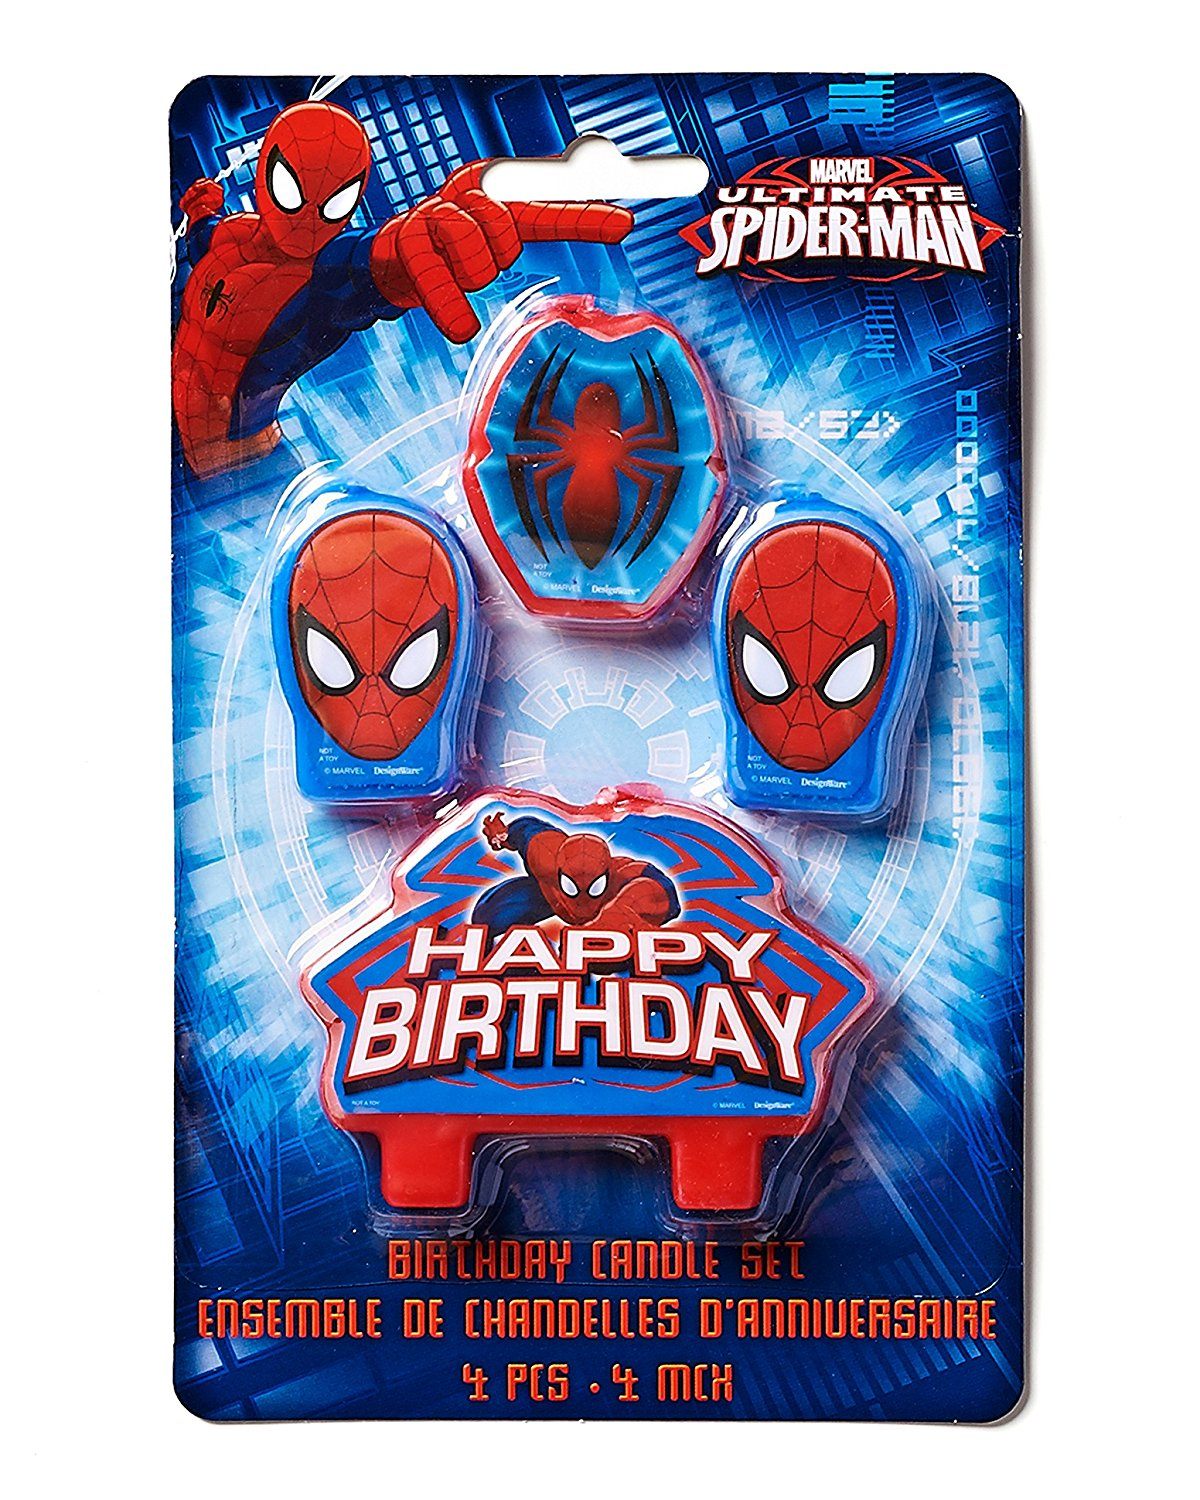 Spider Man Birthday Party Cake Candle Set 1 3 4ct